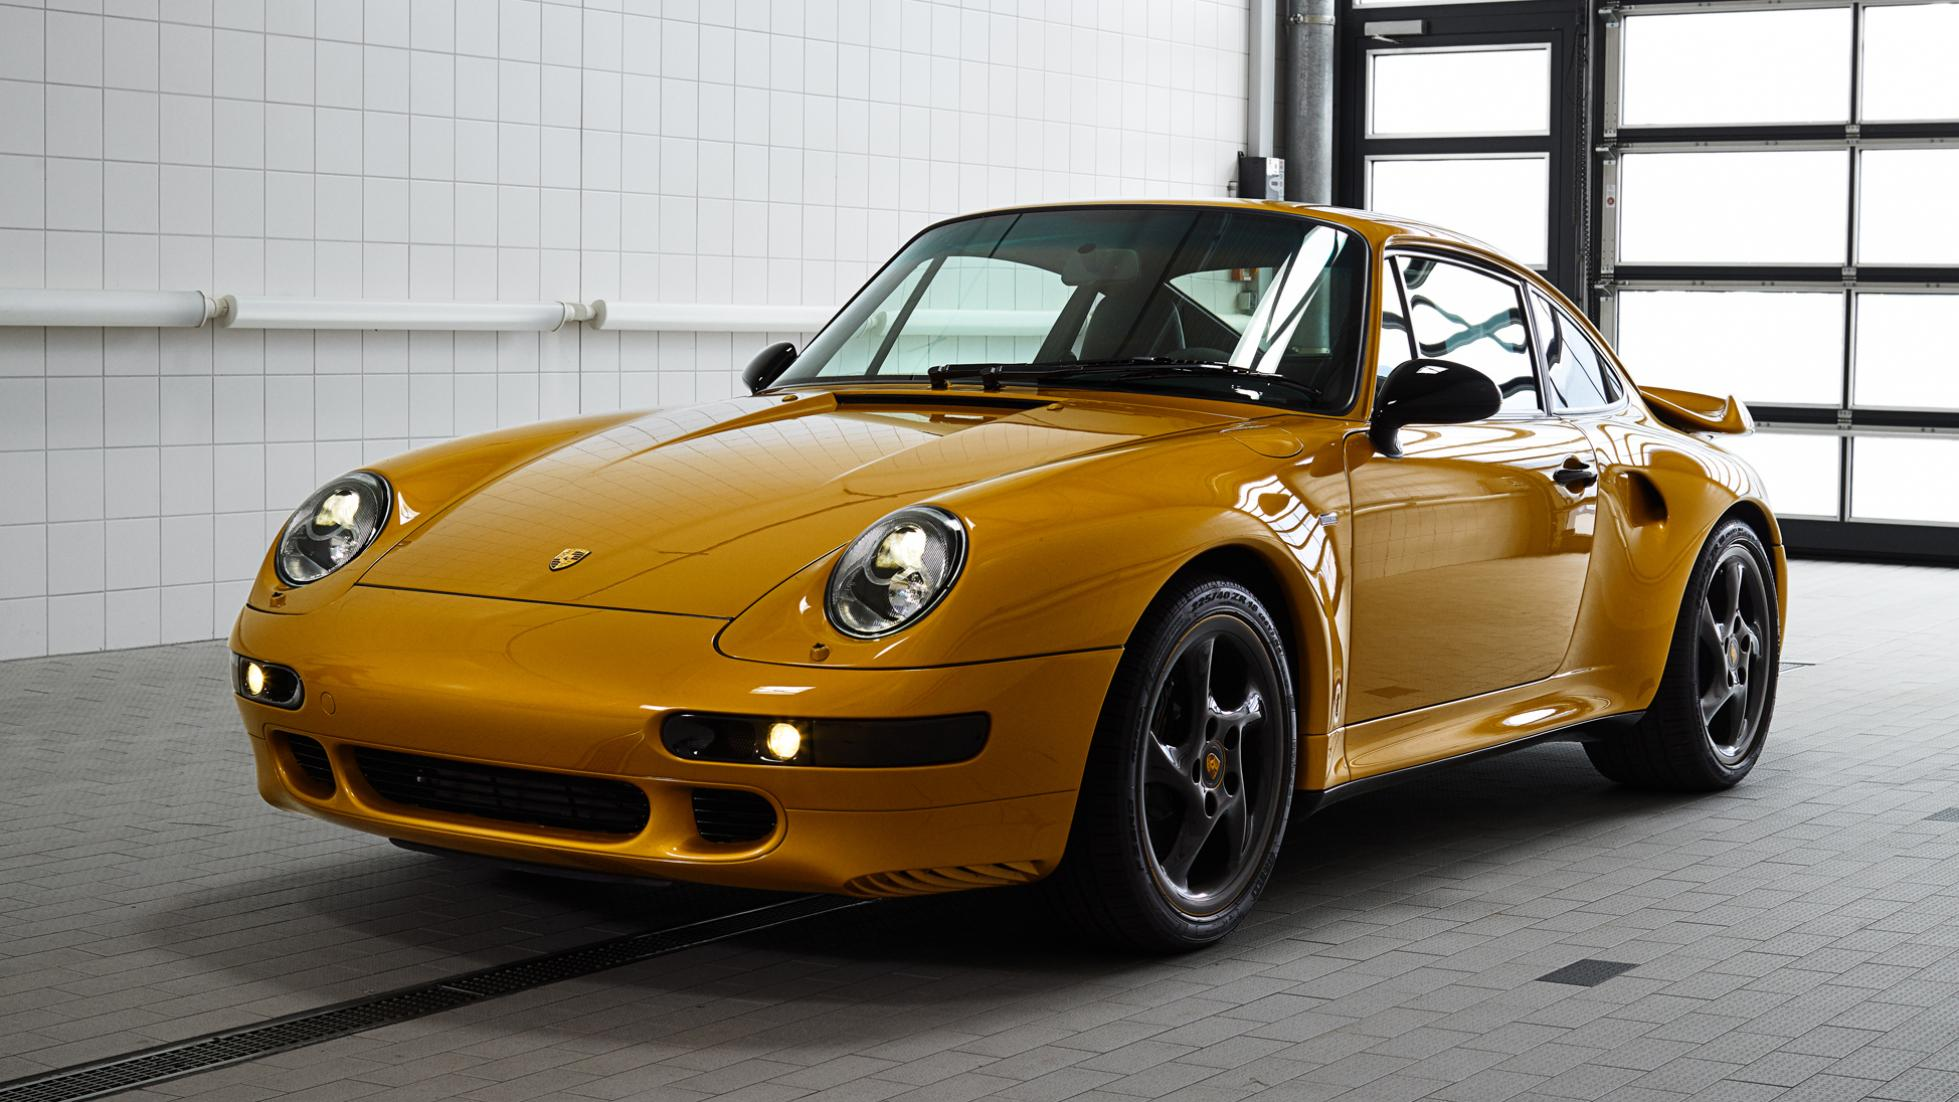 2018 1997 Porsche 911 Turbo S Classic Series